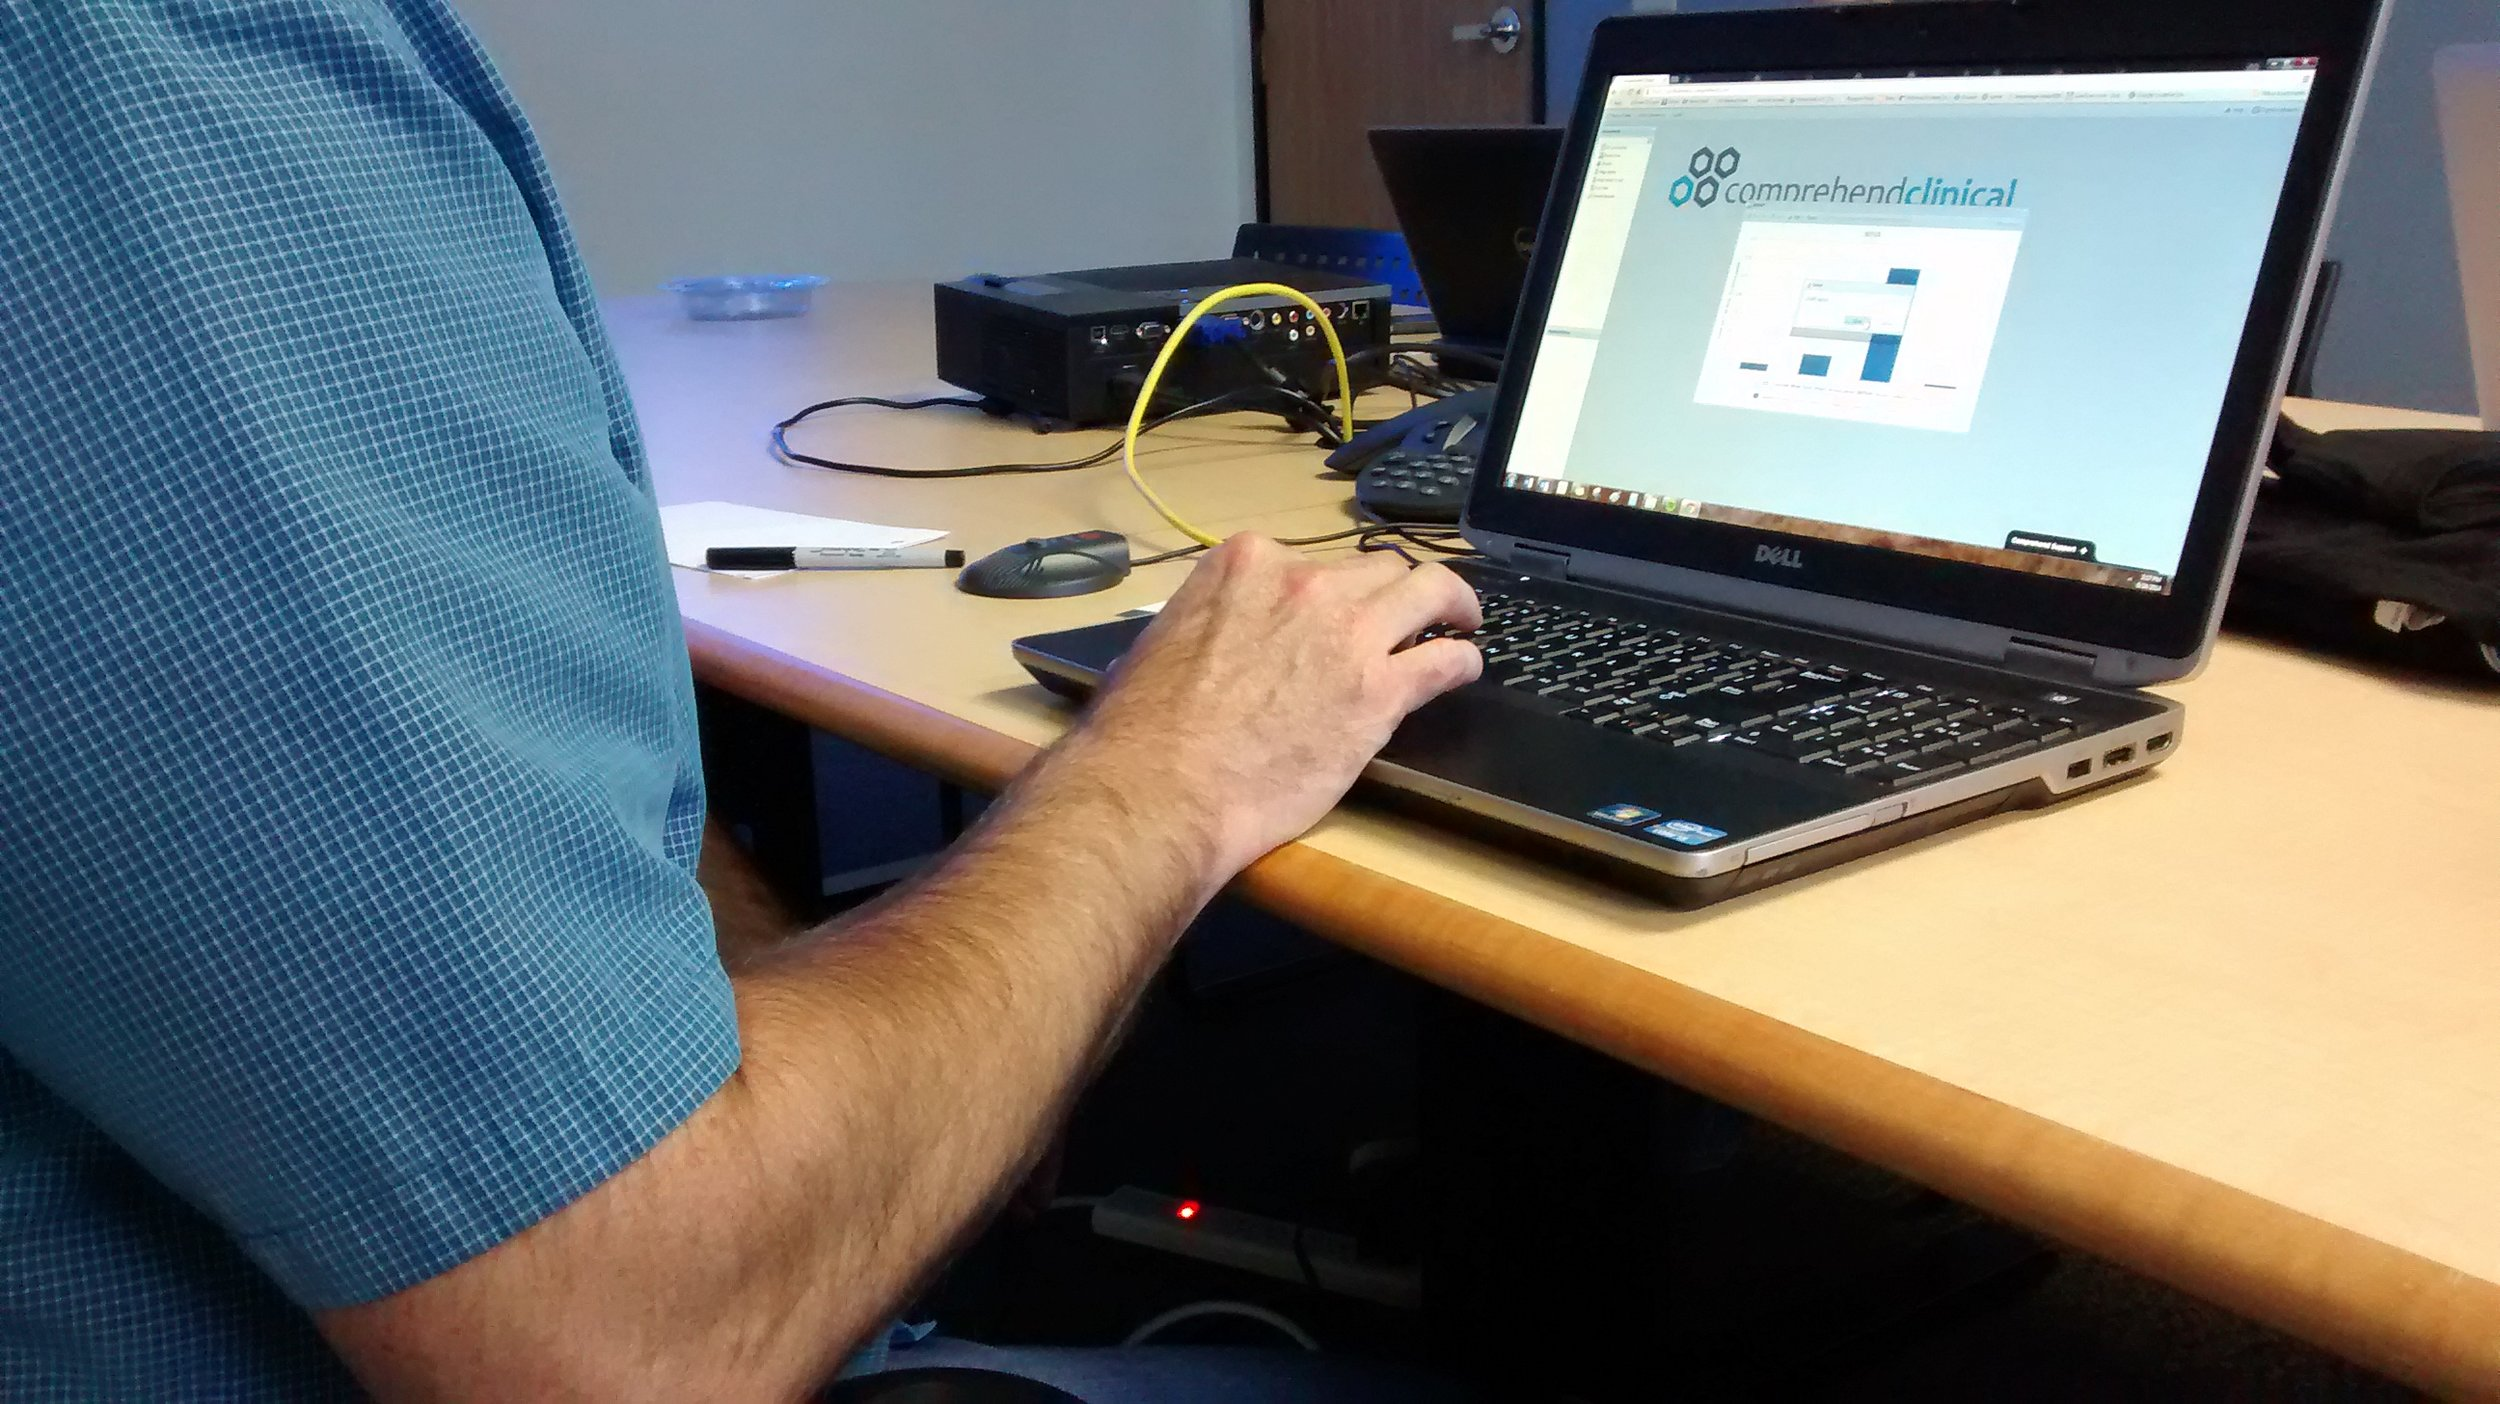 Observing existing customer using the previous version of the software.